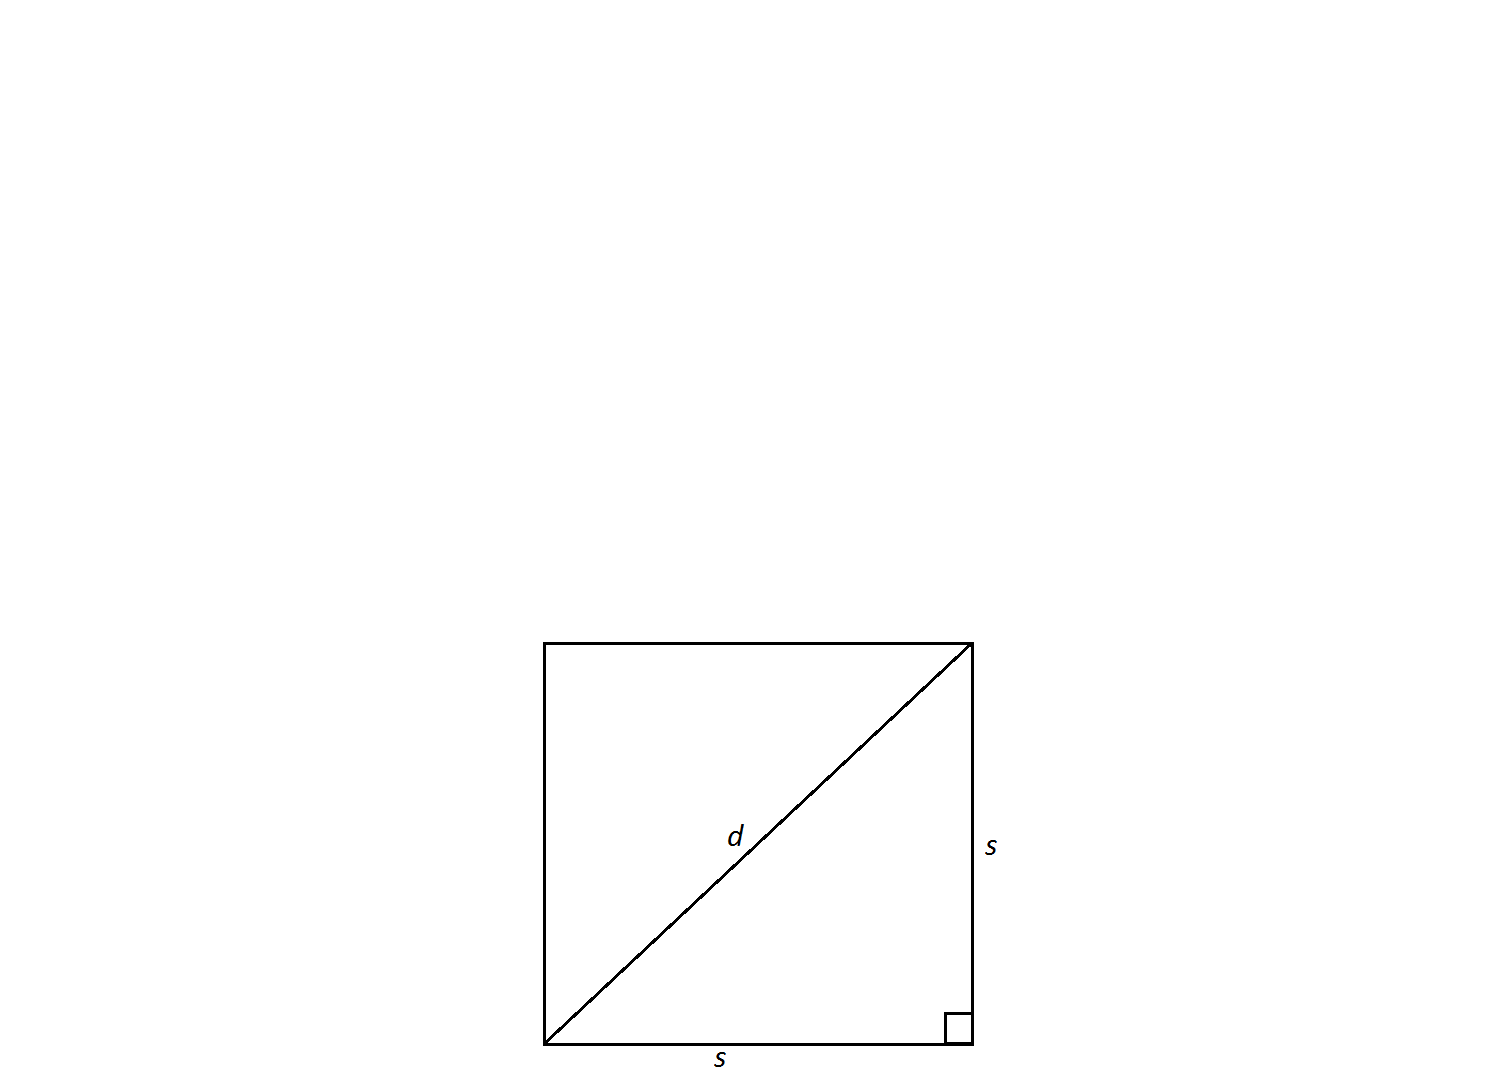 Square_with_diagonal